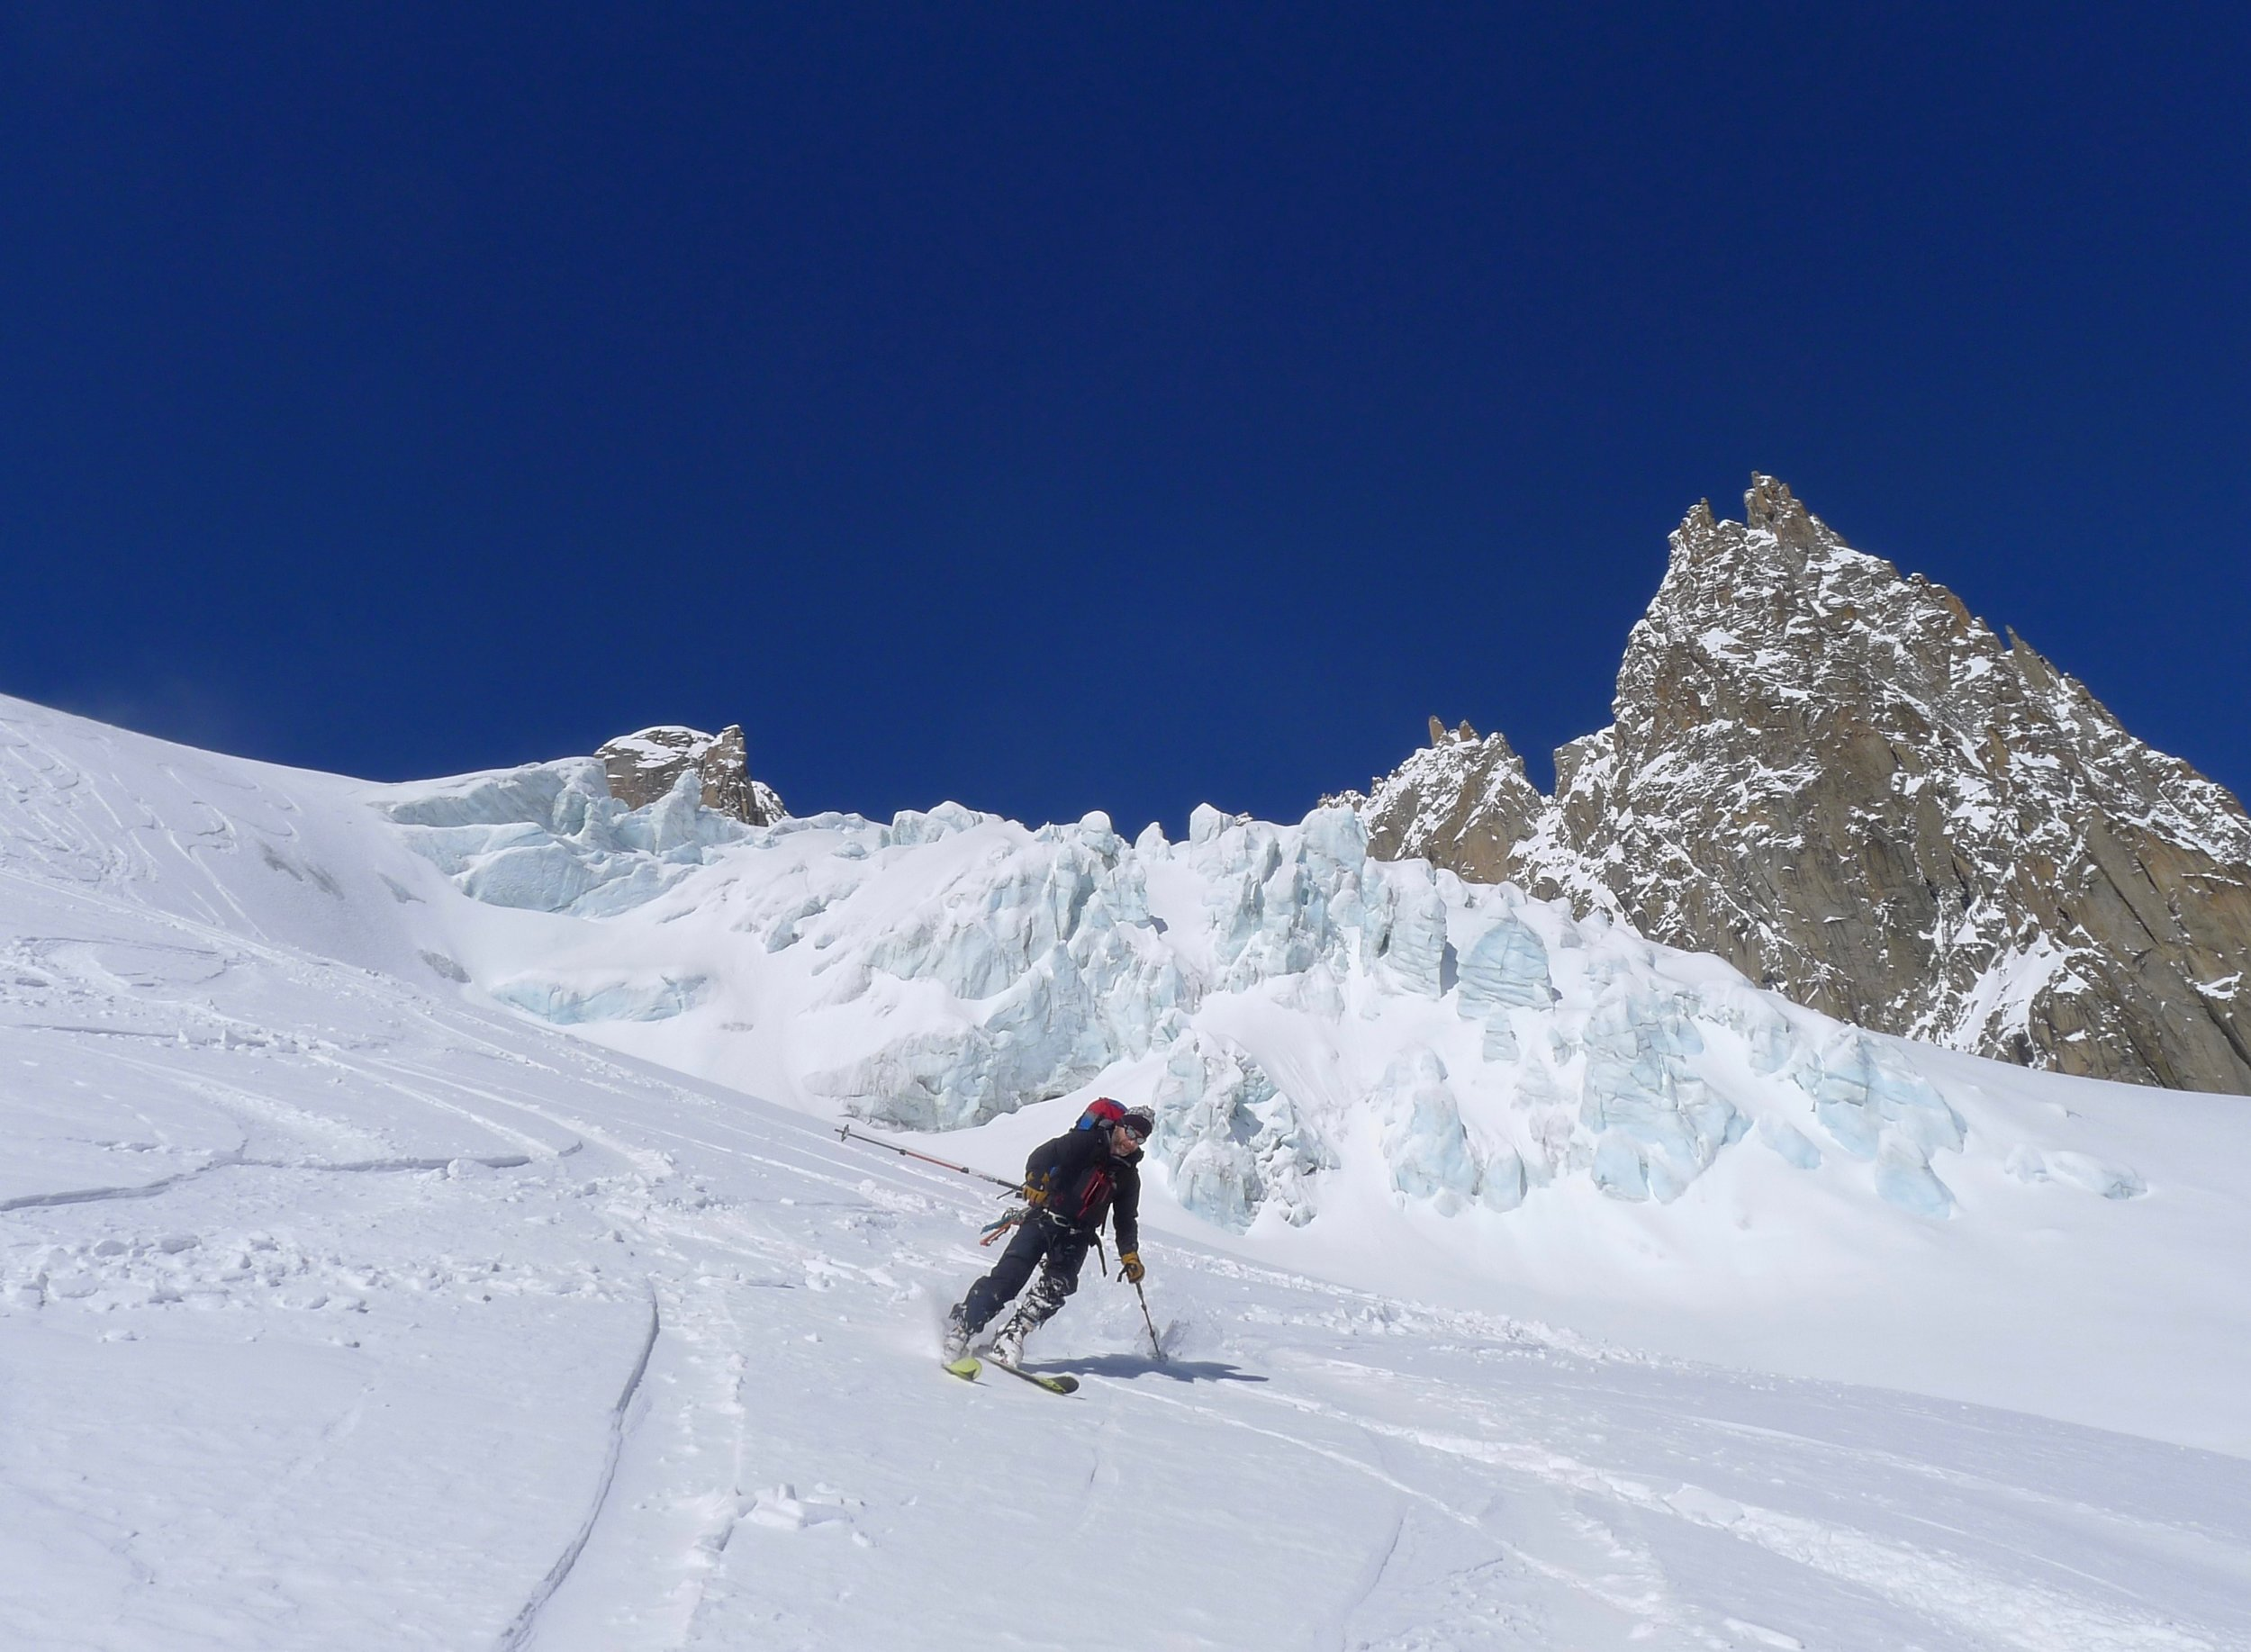 Glacial scenery skiing in the Vallee Blanche, Chamonix. Dave Palmer skiing